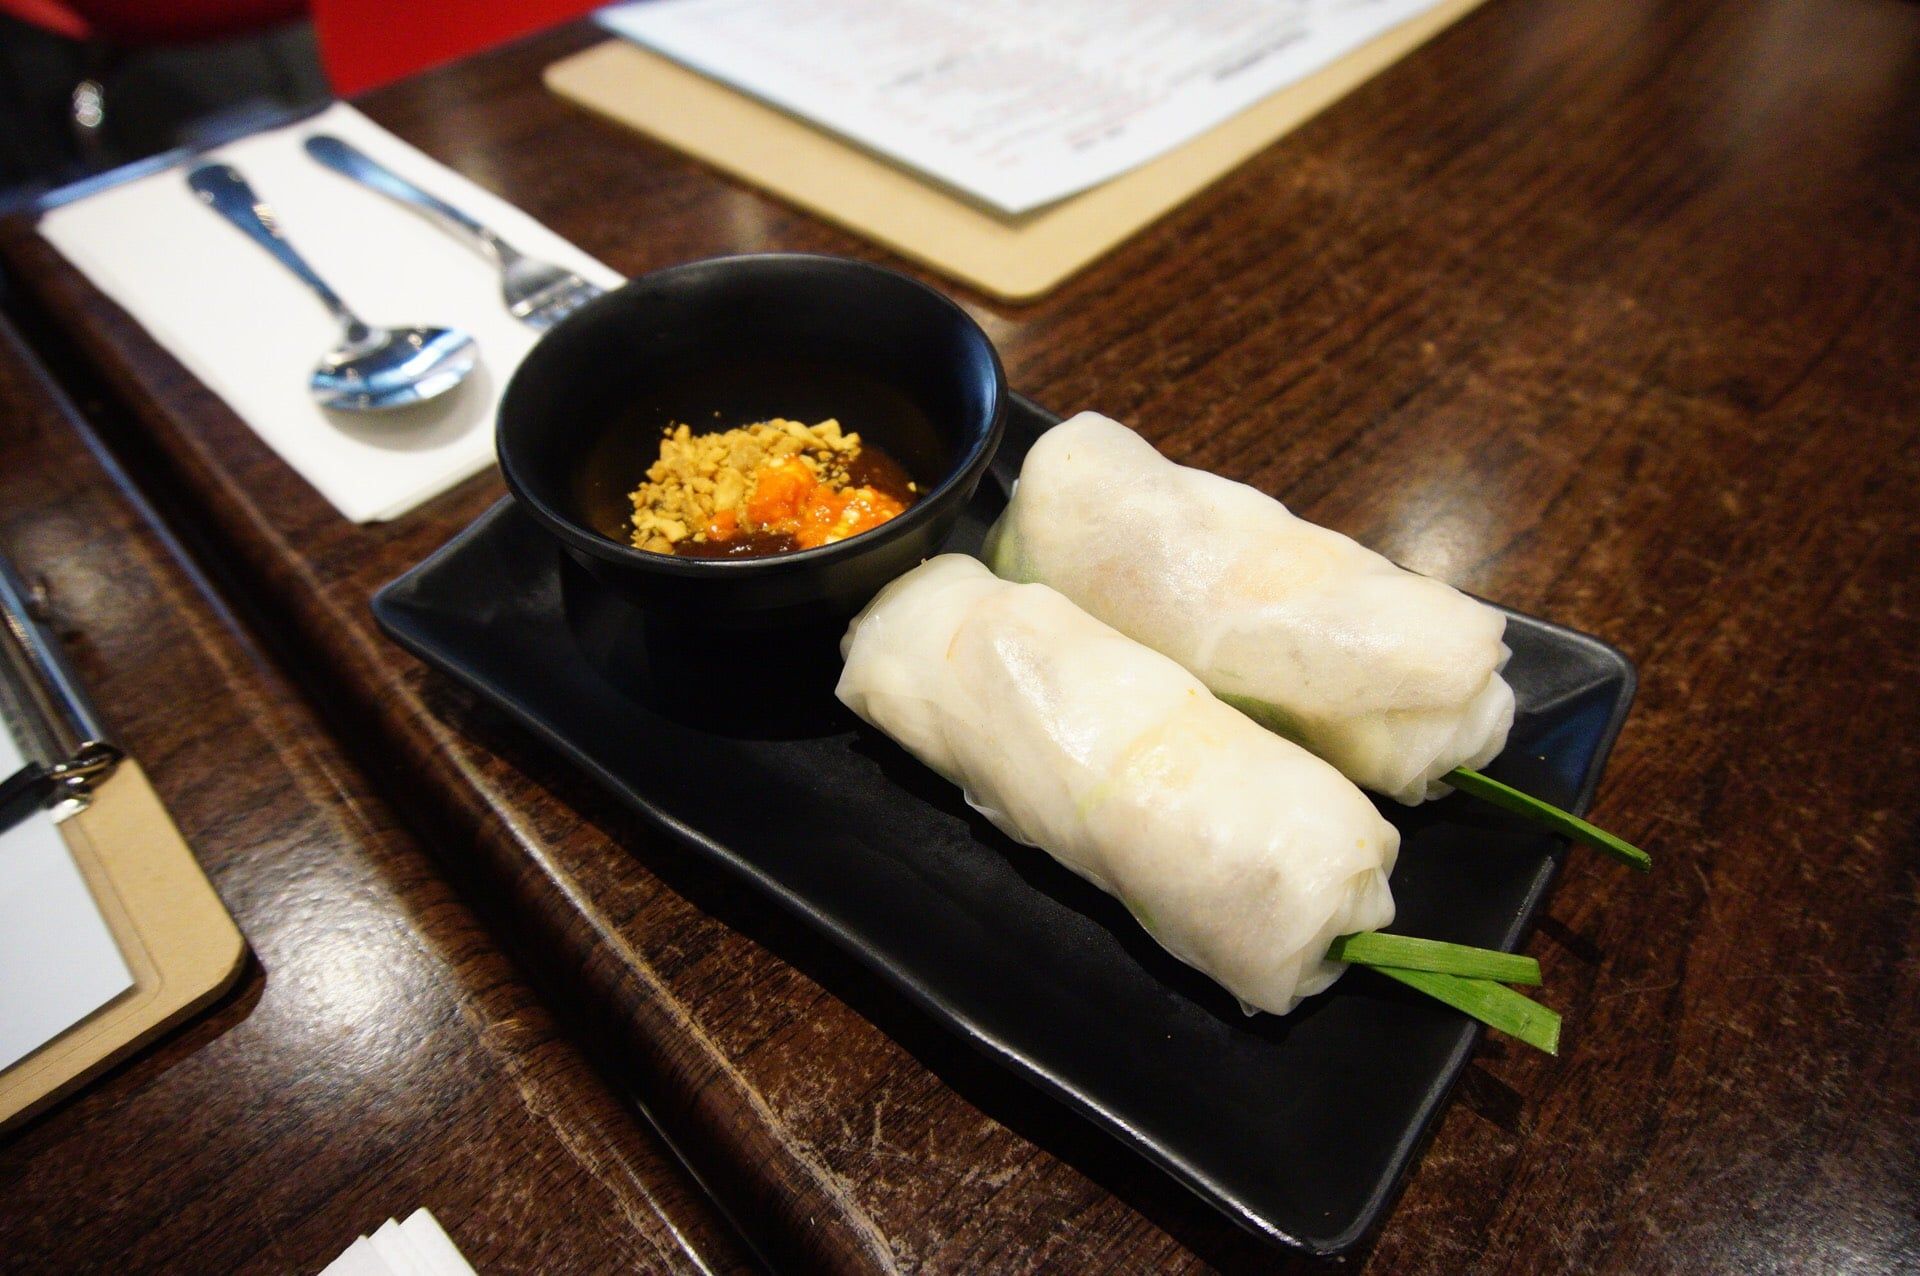 Little Grill's Rice paper roll with prawn and shredded pork - $6